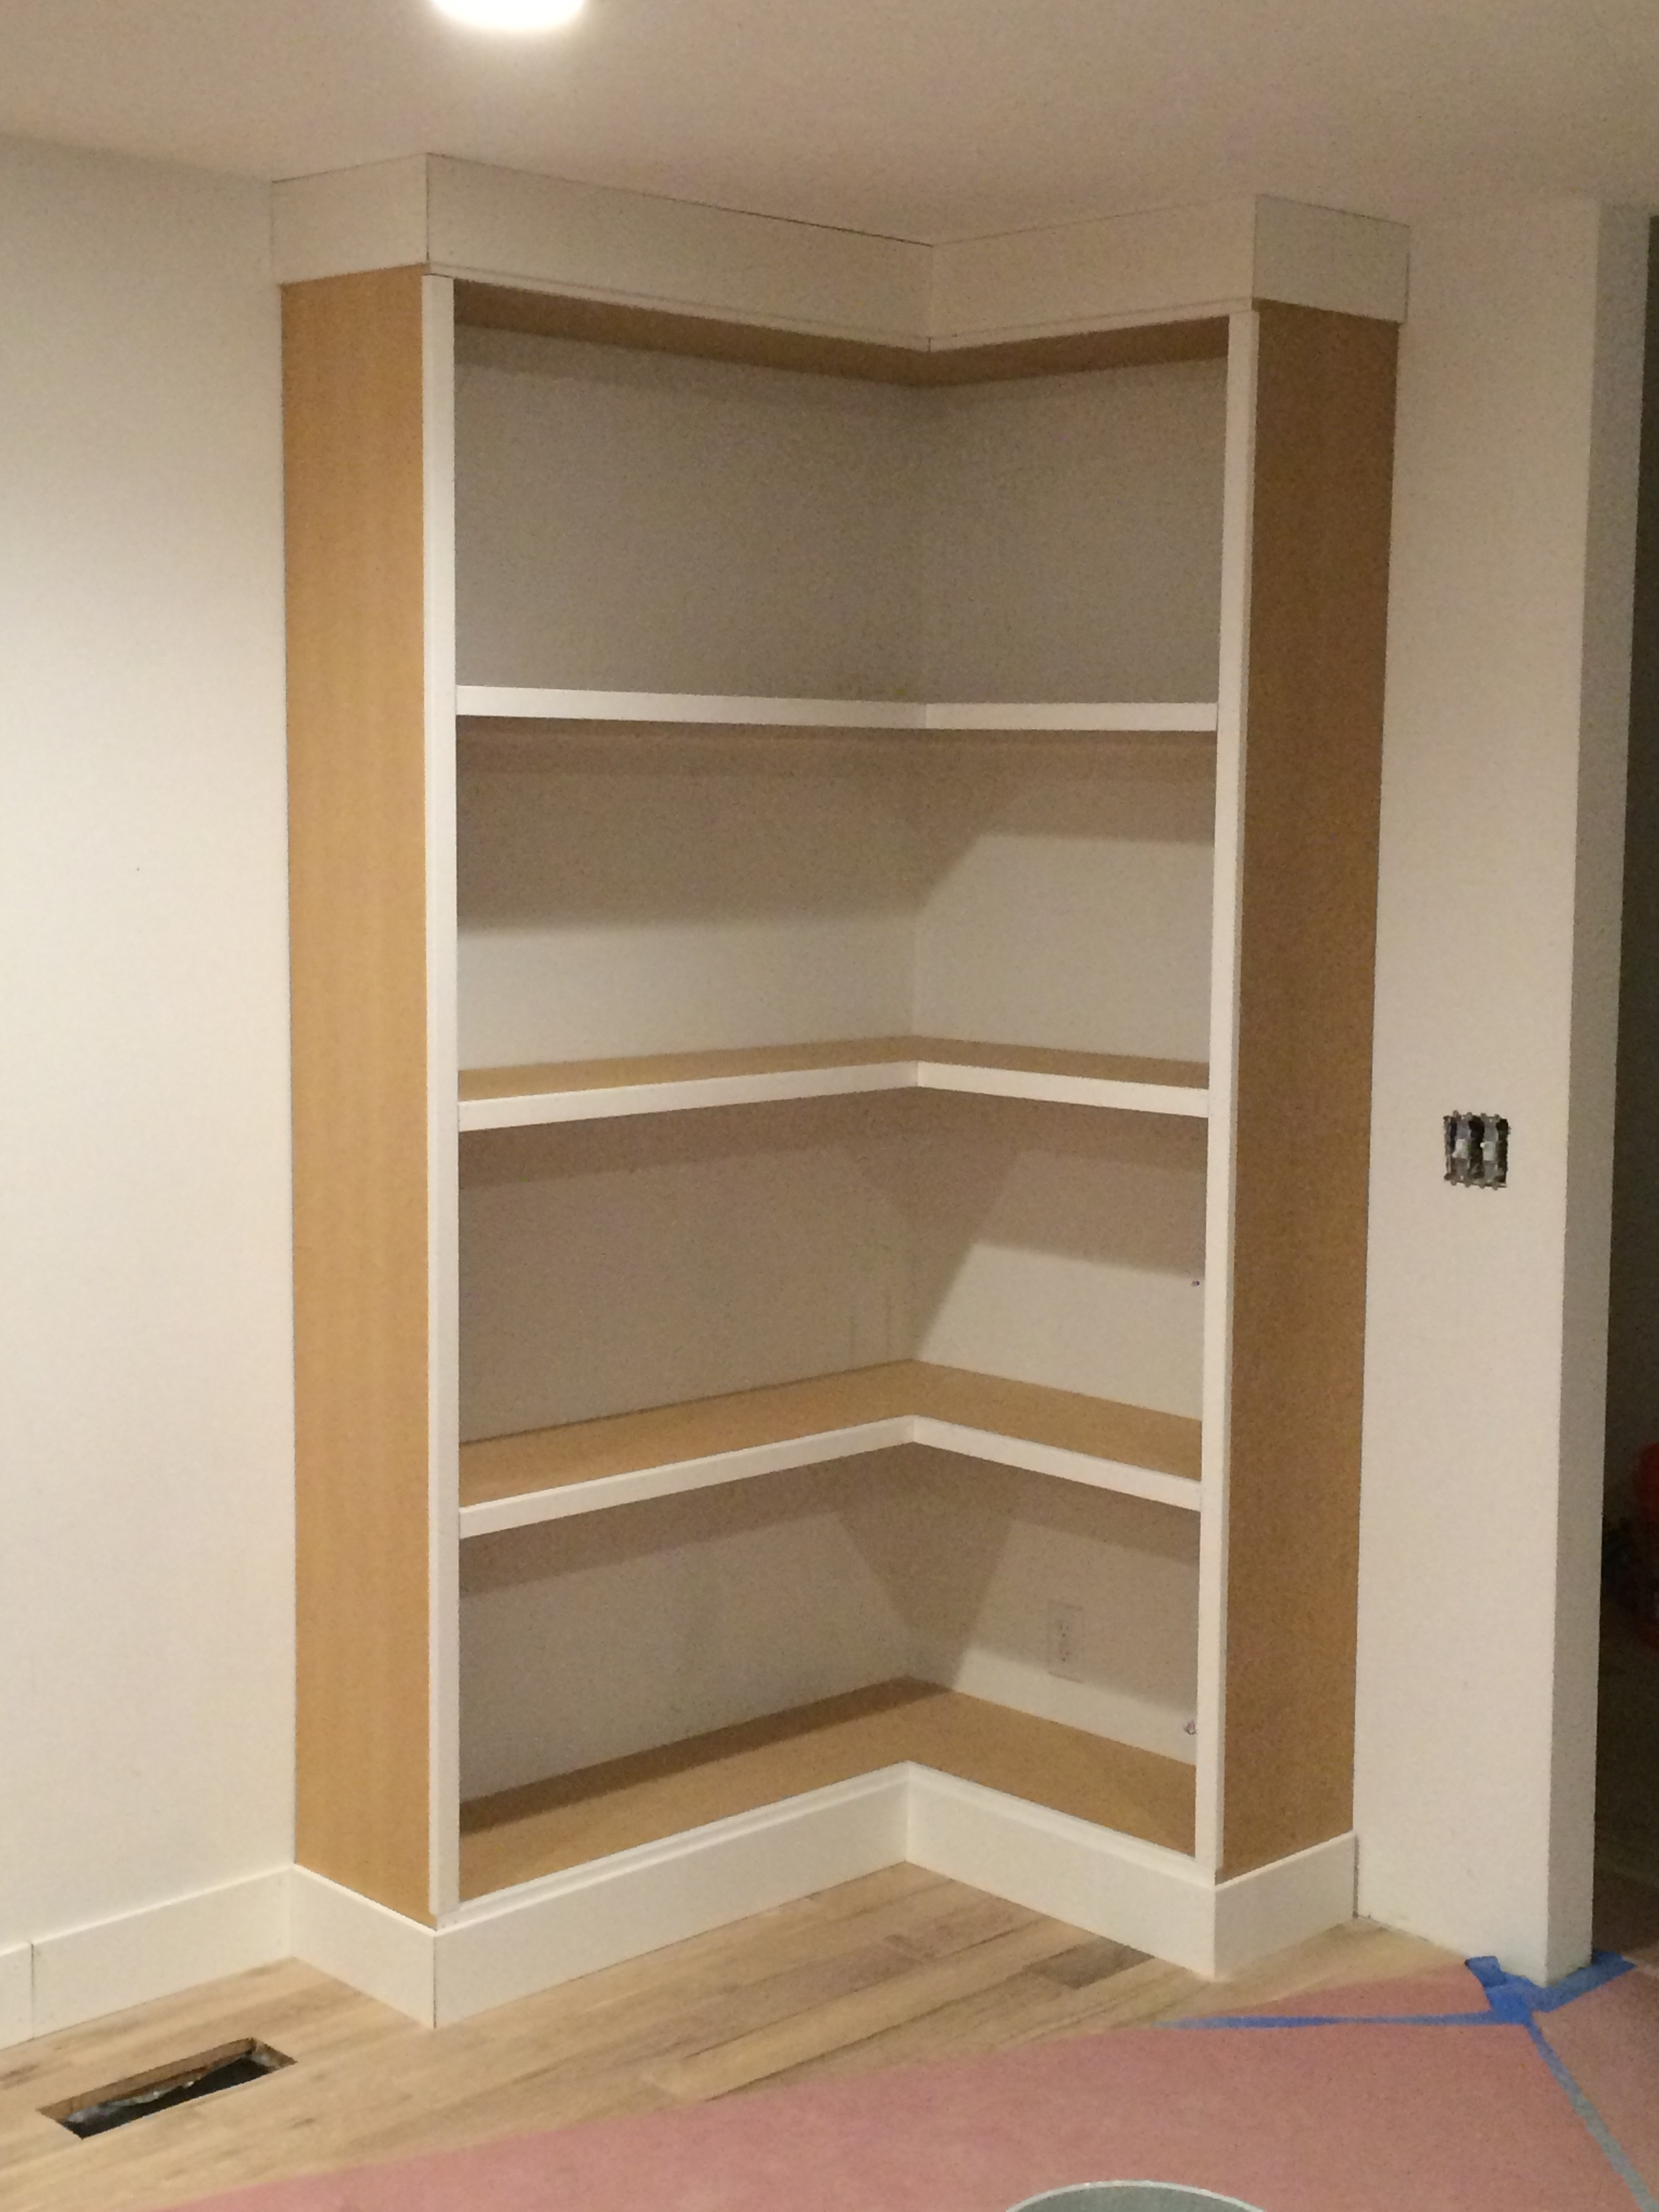 Diy Corner Bookcase Video Withheart With Regard To Corner Bookcase (#10 of 15)